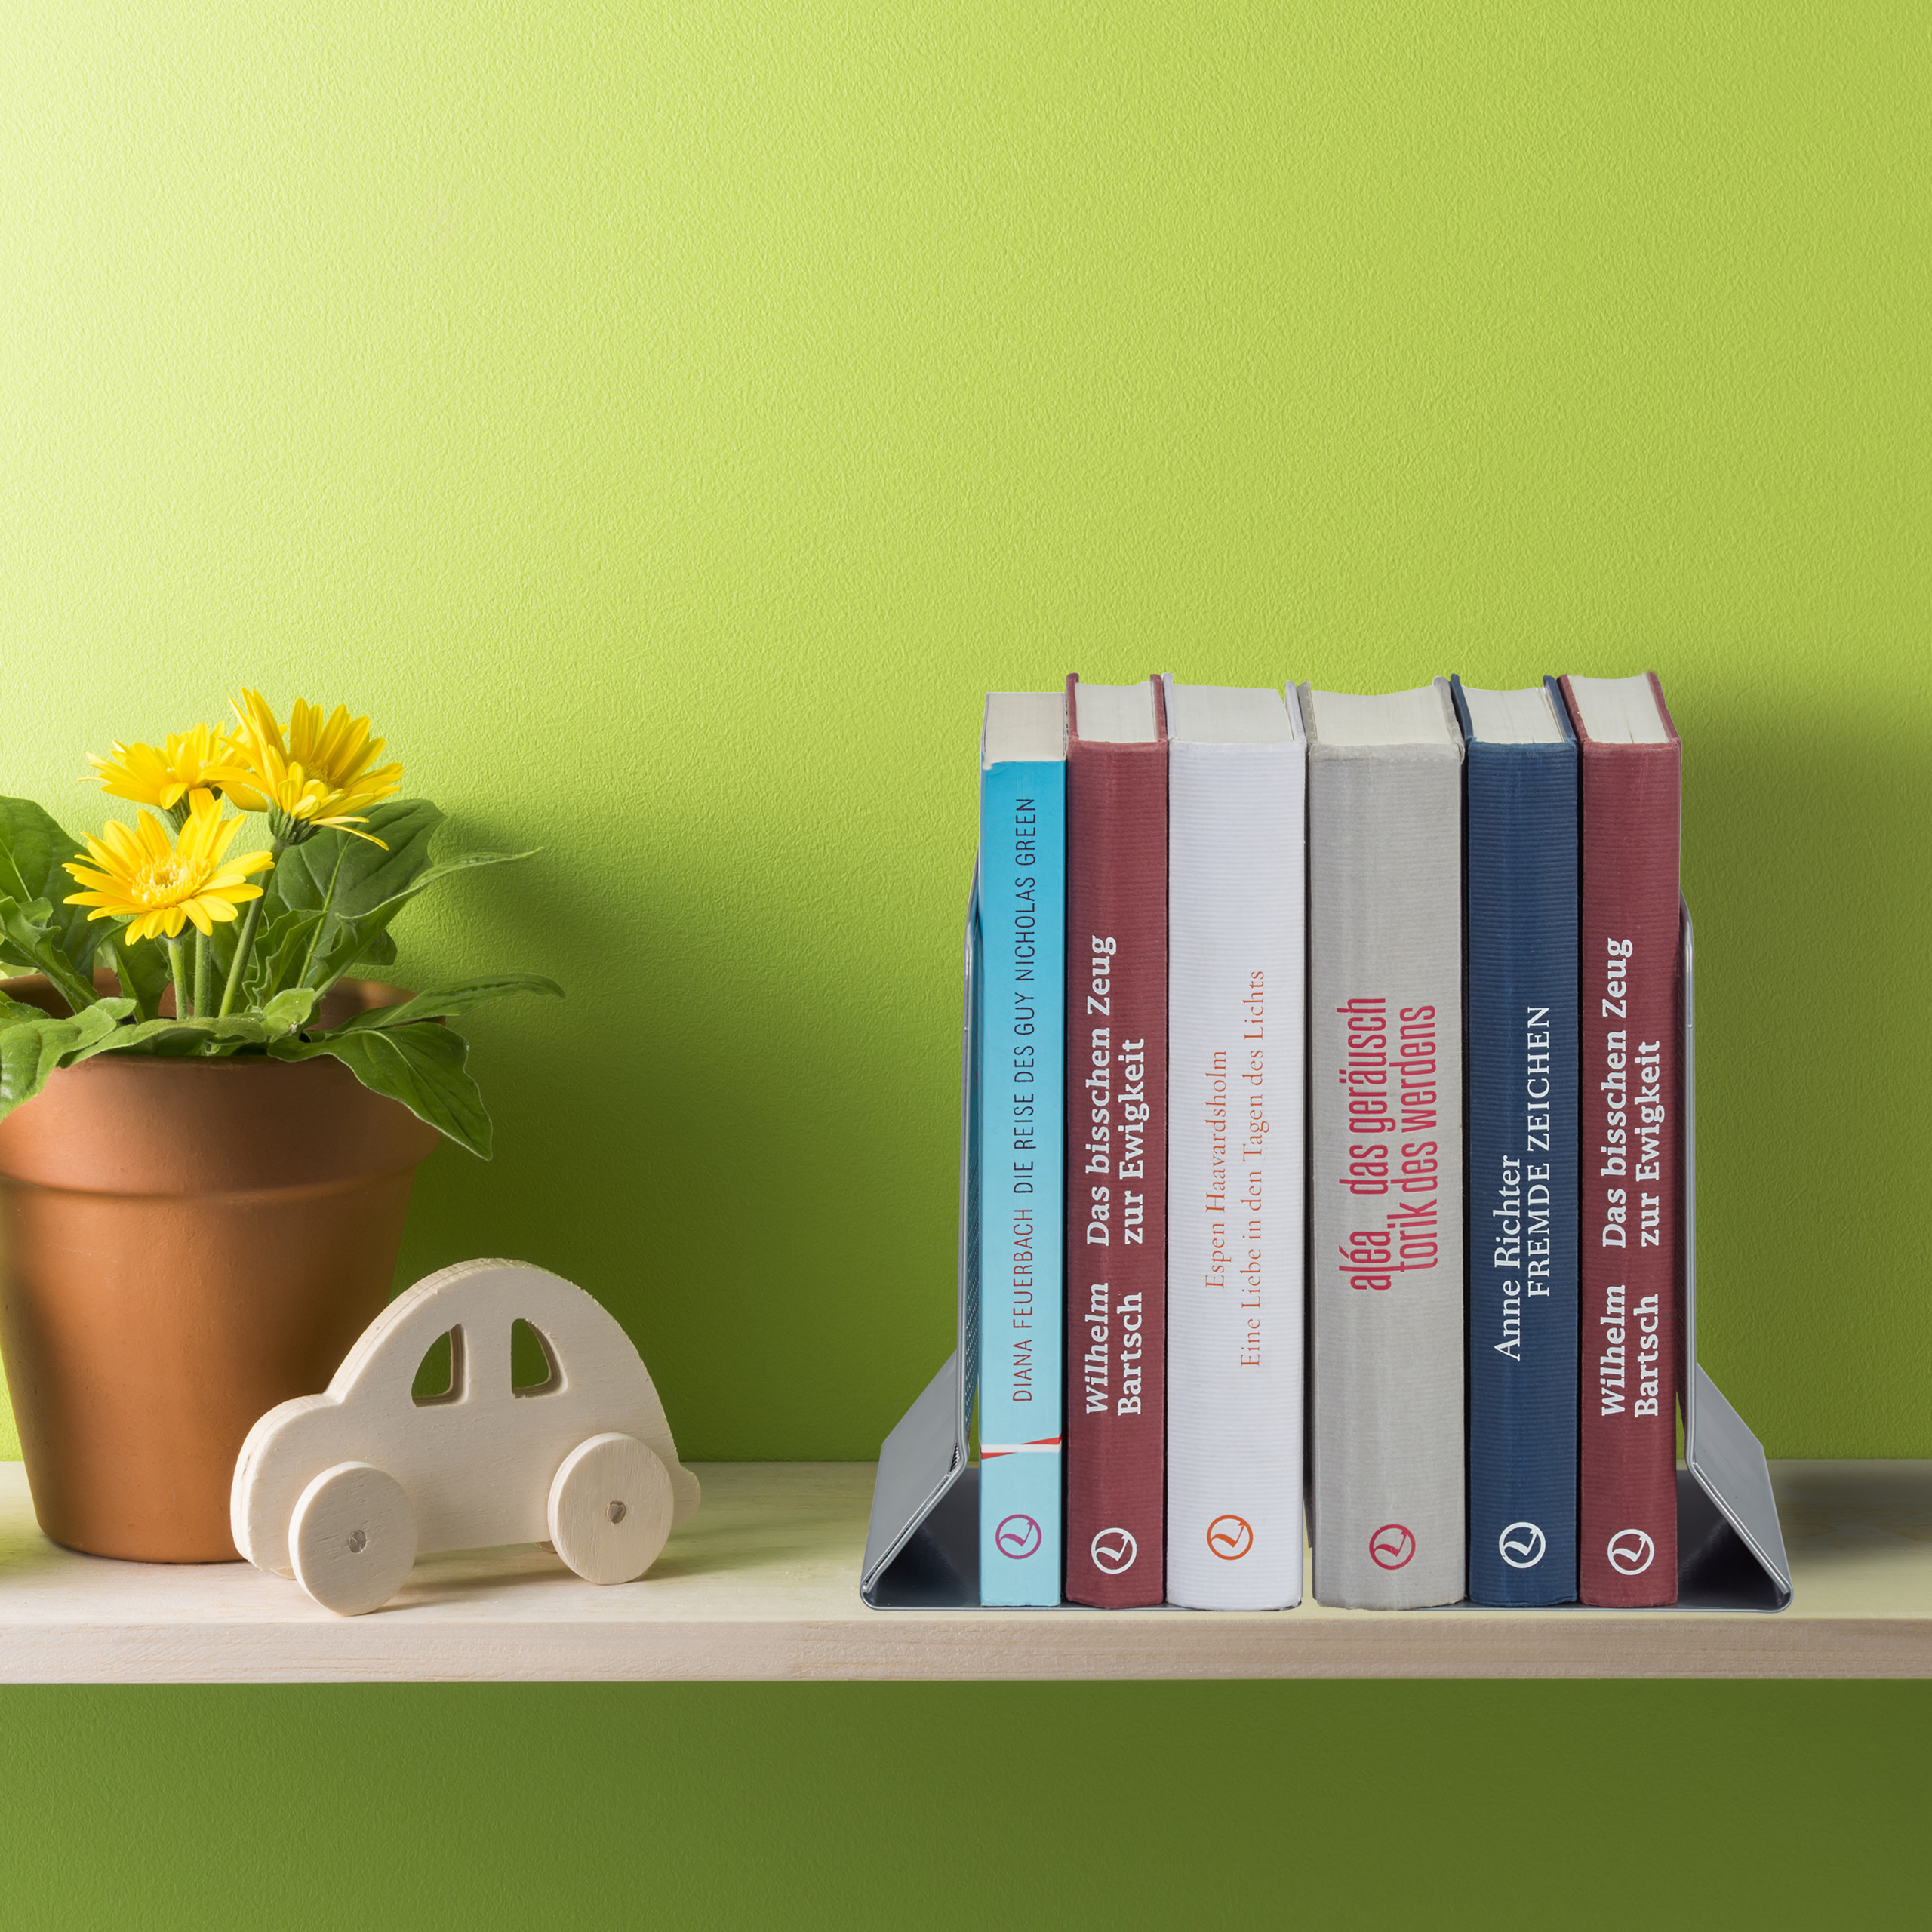 2-Piece-Bookend-Set-Decorative-Book-CD-and-DVD-Holders-Metal-Book-Support thumbnail 11